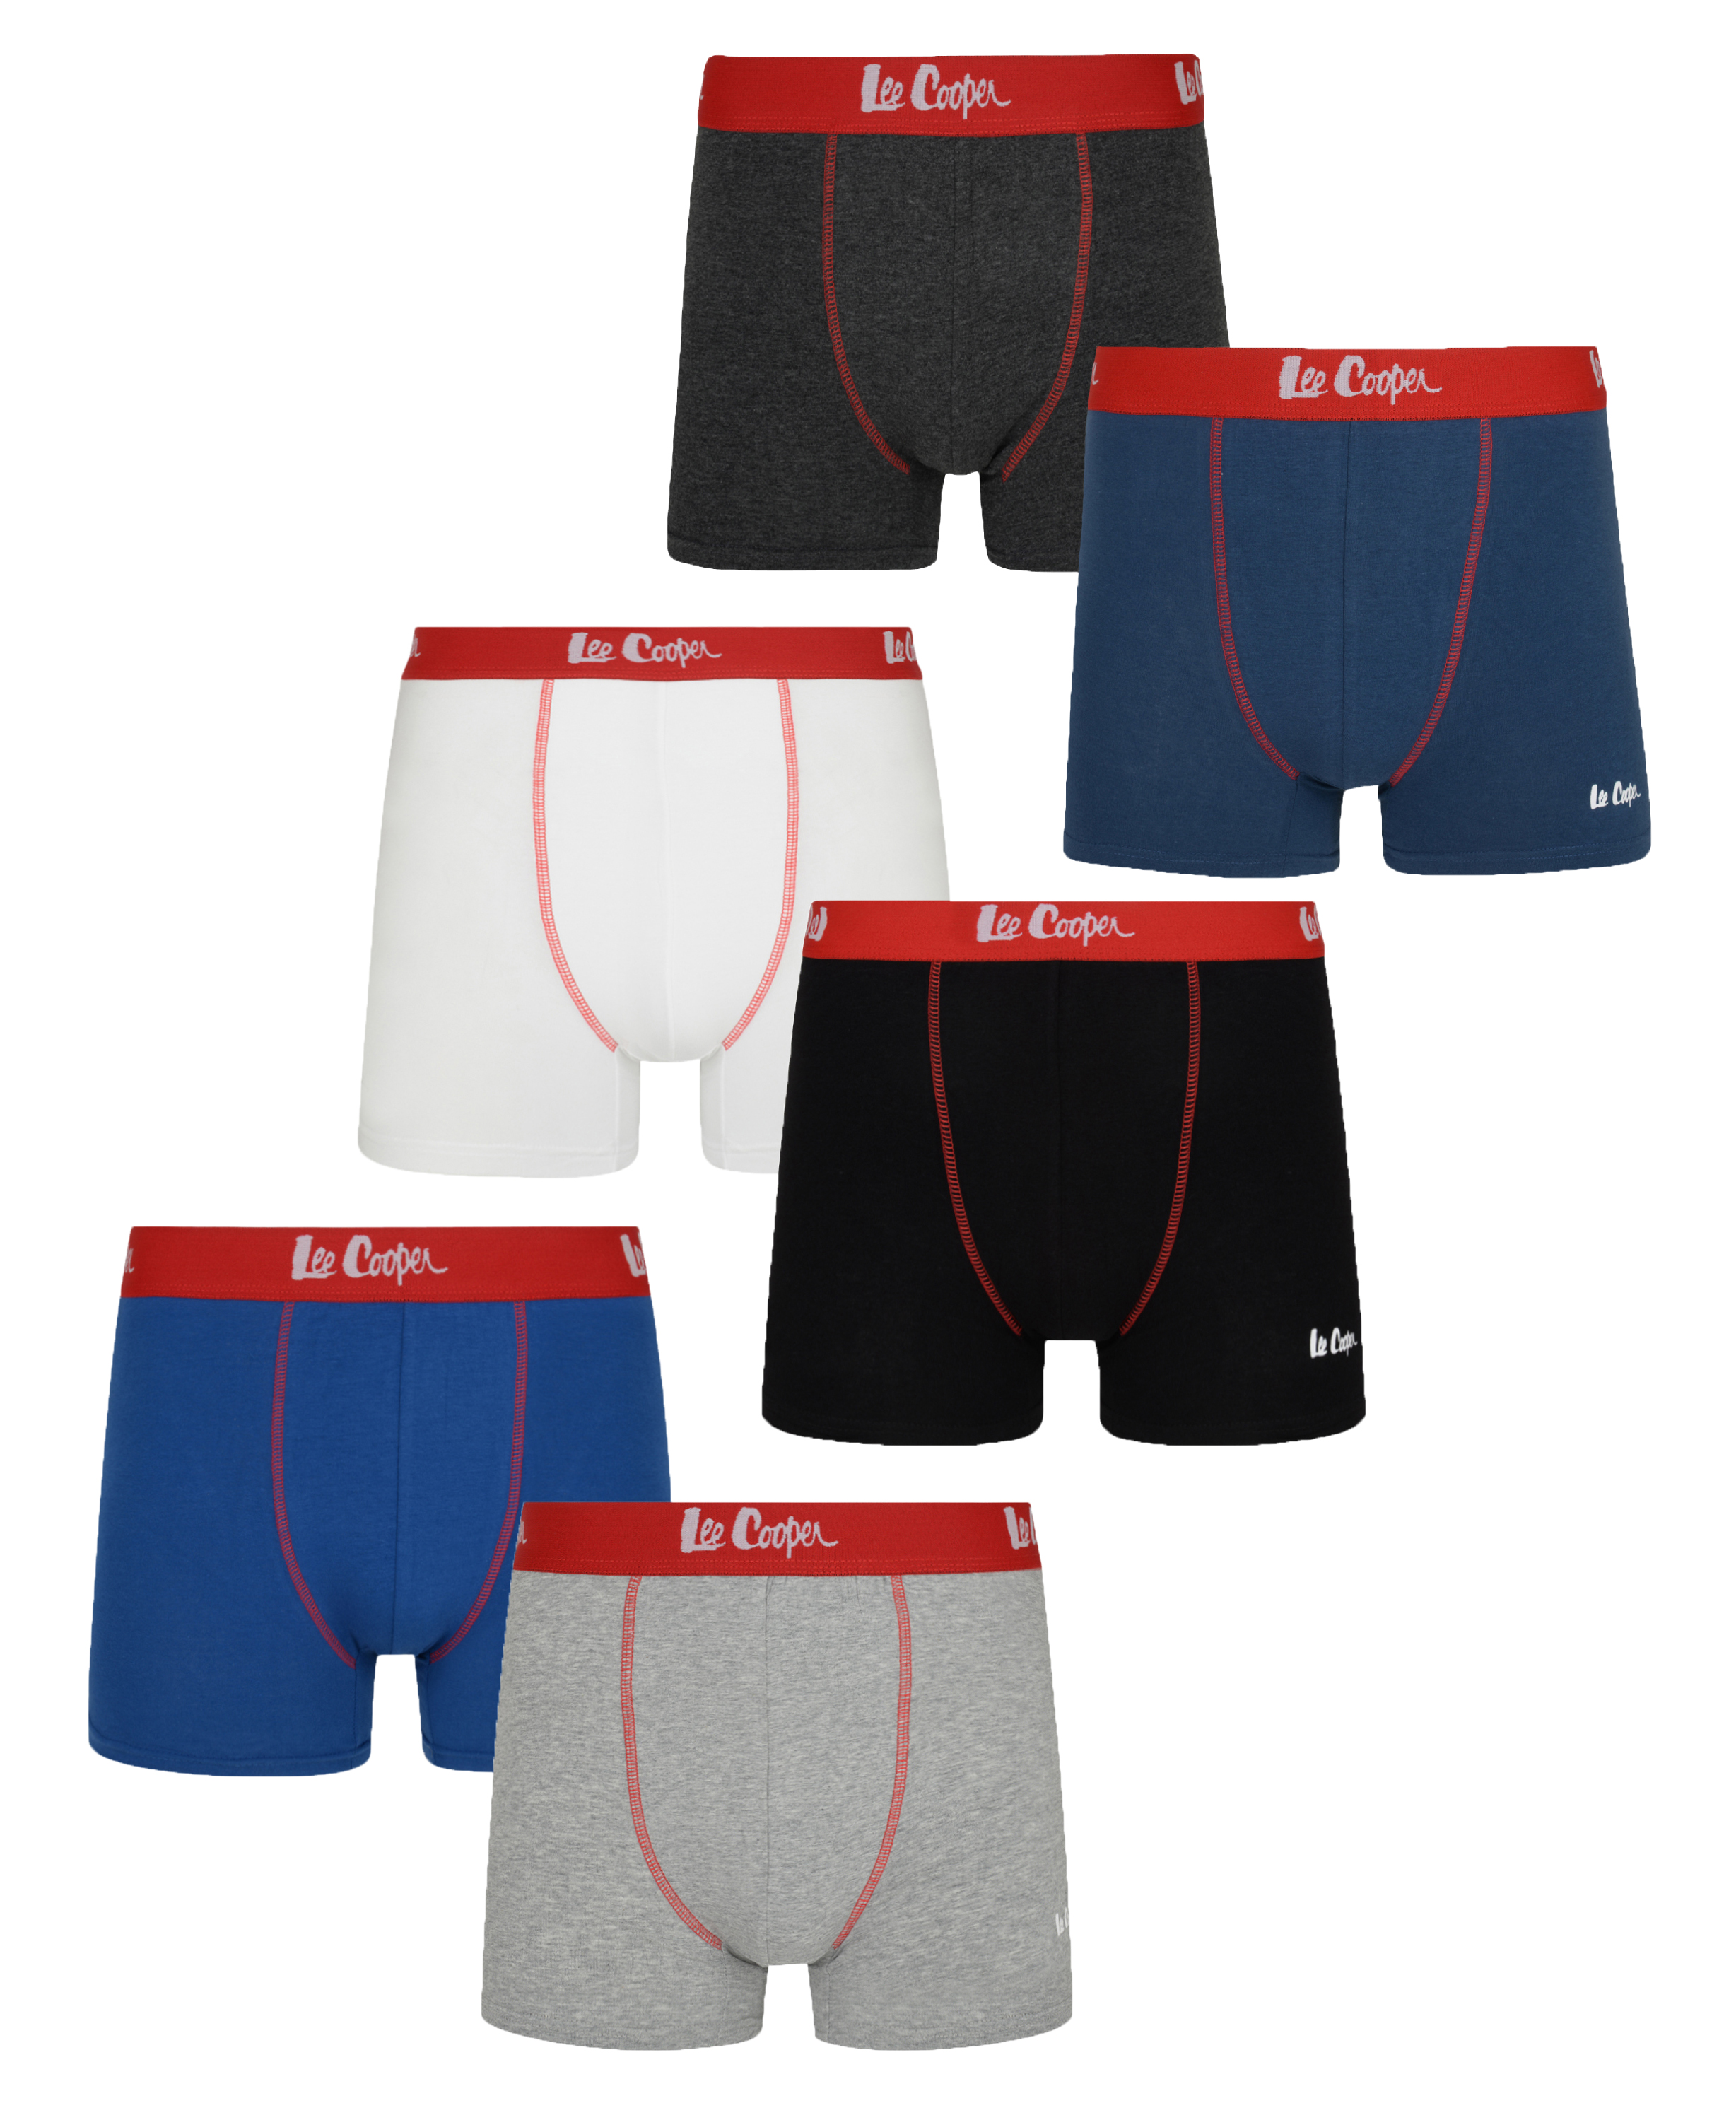 Lee Cooper Boxers 5 Pack Mens Gents Boxer Underclothes Elasticated Waist